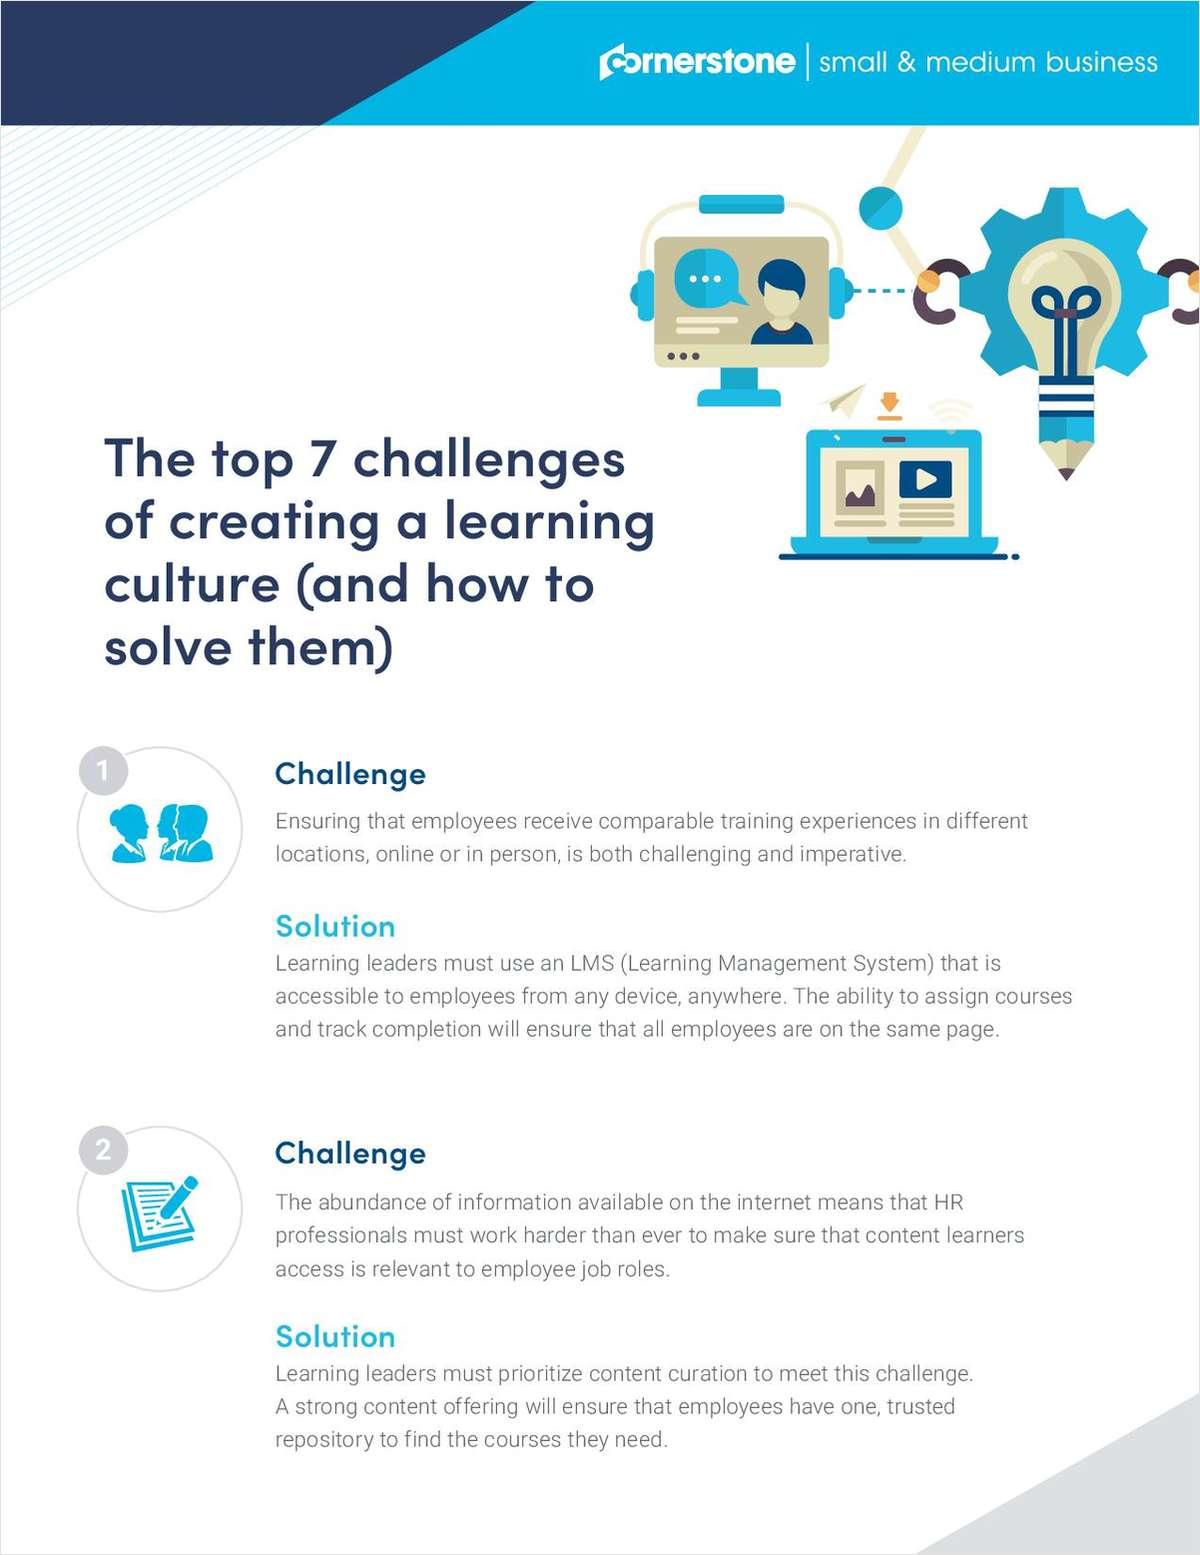 The Top 7 Challenges Of Creating A Learning Culture (And How To Solve Them)